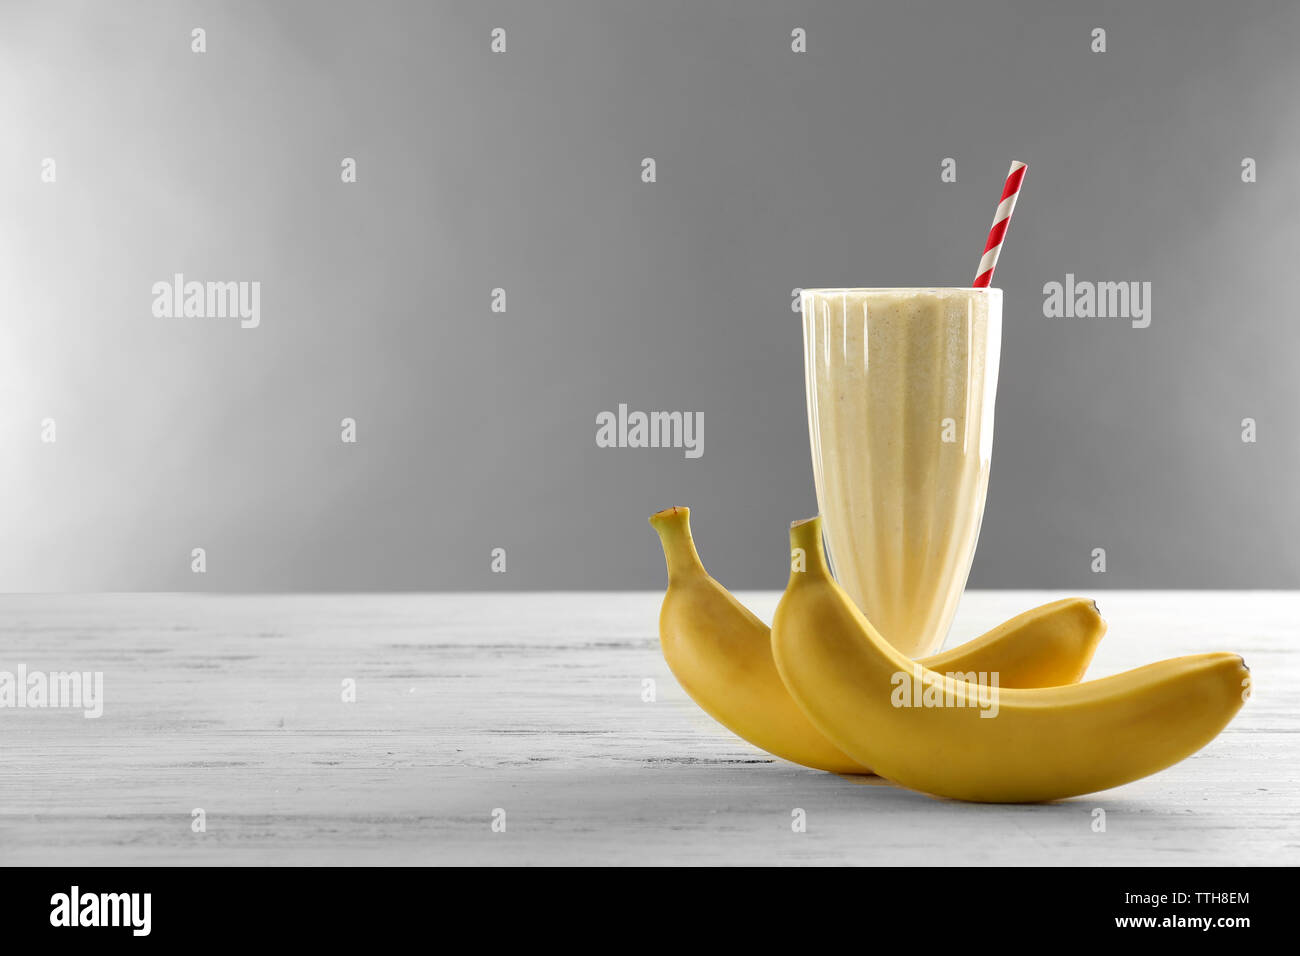 Glass of milk cocktail with bananas on grey background - Stock Image